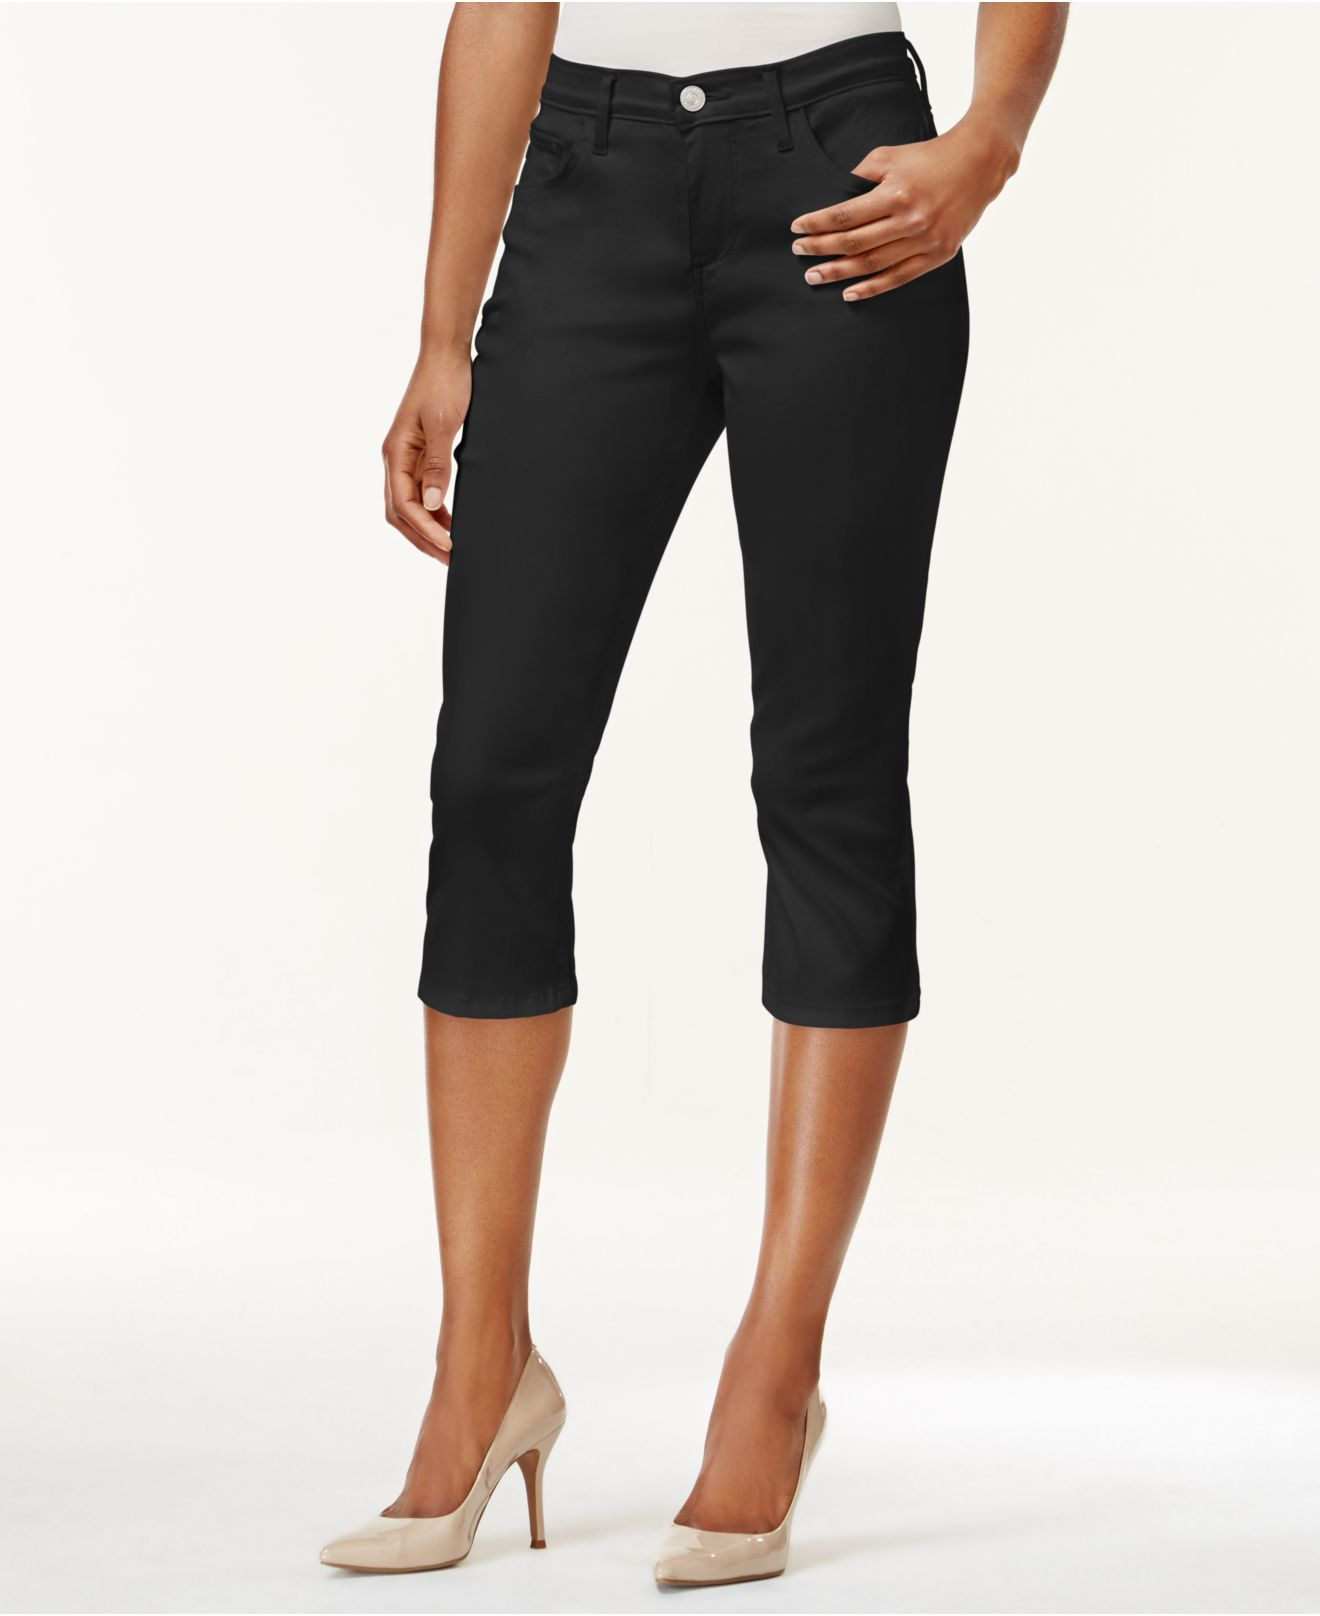 Black Petite Jeans for women at Macy's come in all styles and sizes. Shop a great selection of trendy women's jeans in petite sizes and find jeans that fit you best! Free shipping - Macy's Star Rewards Members! Macy's Presents: The Edit- A curated mix of fashion and inspiration Check It Out.